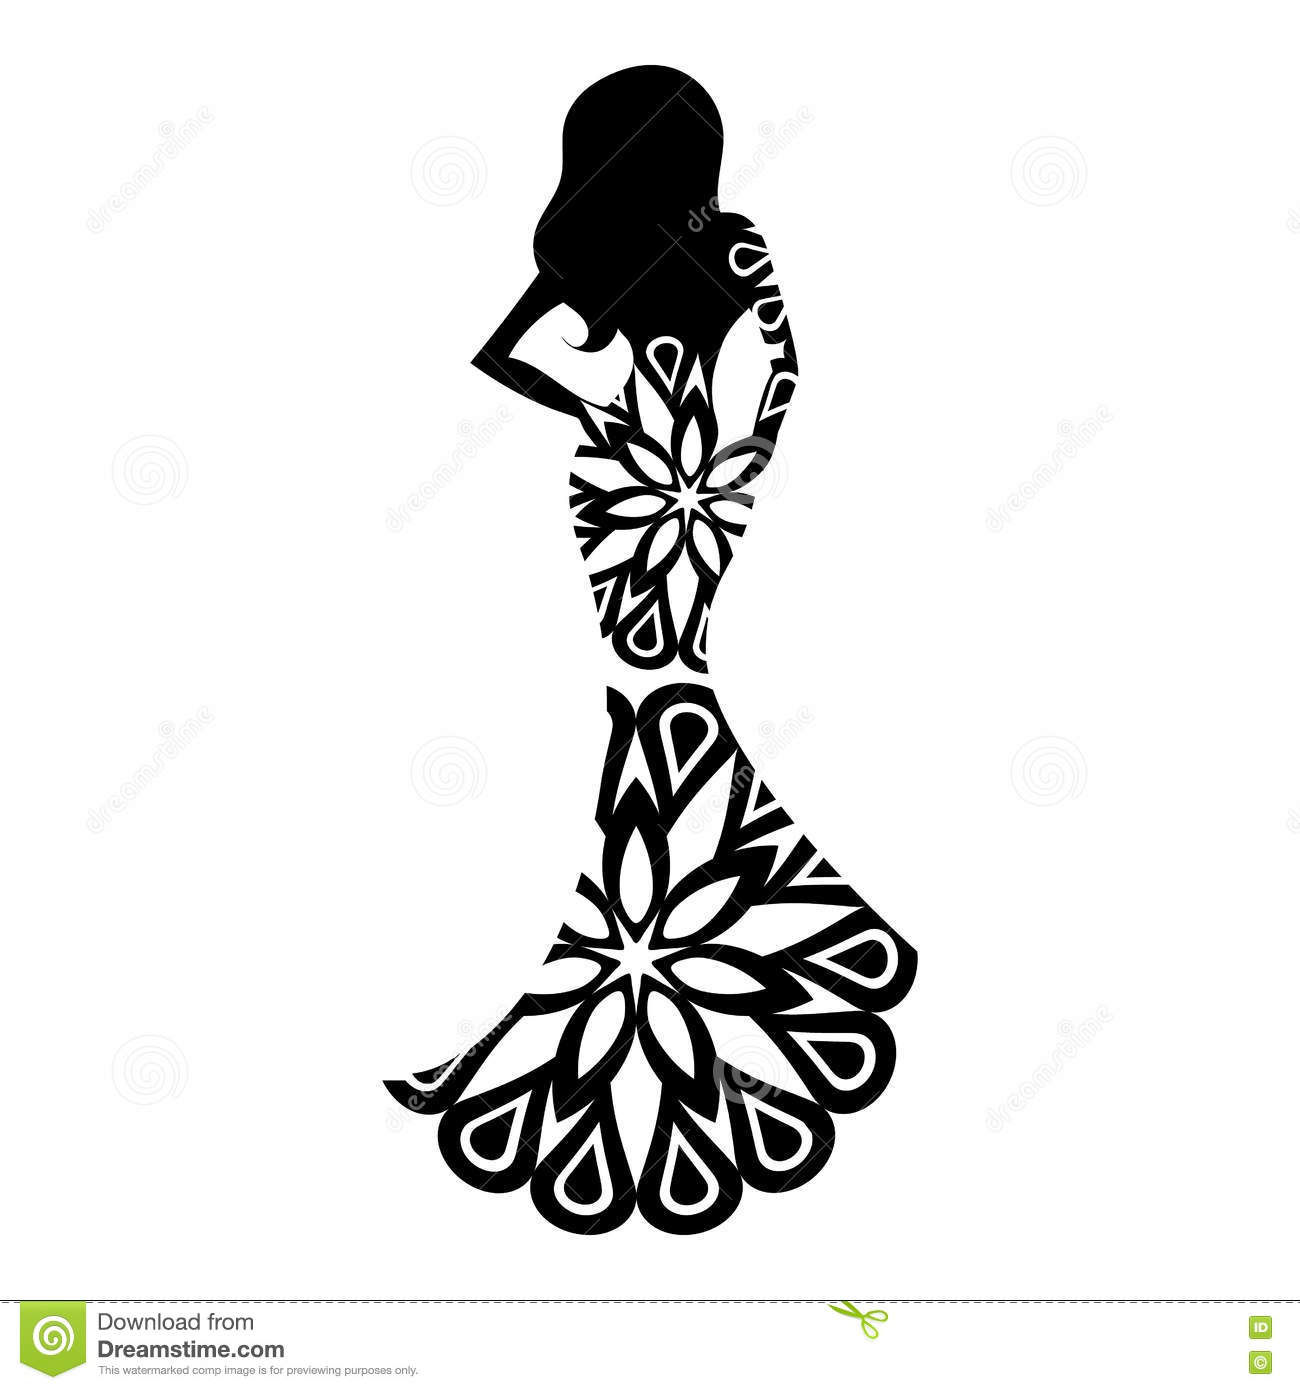 Woman In The Ball Gown Silhouette Stock Vector